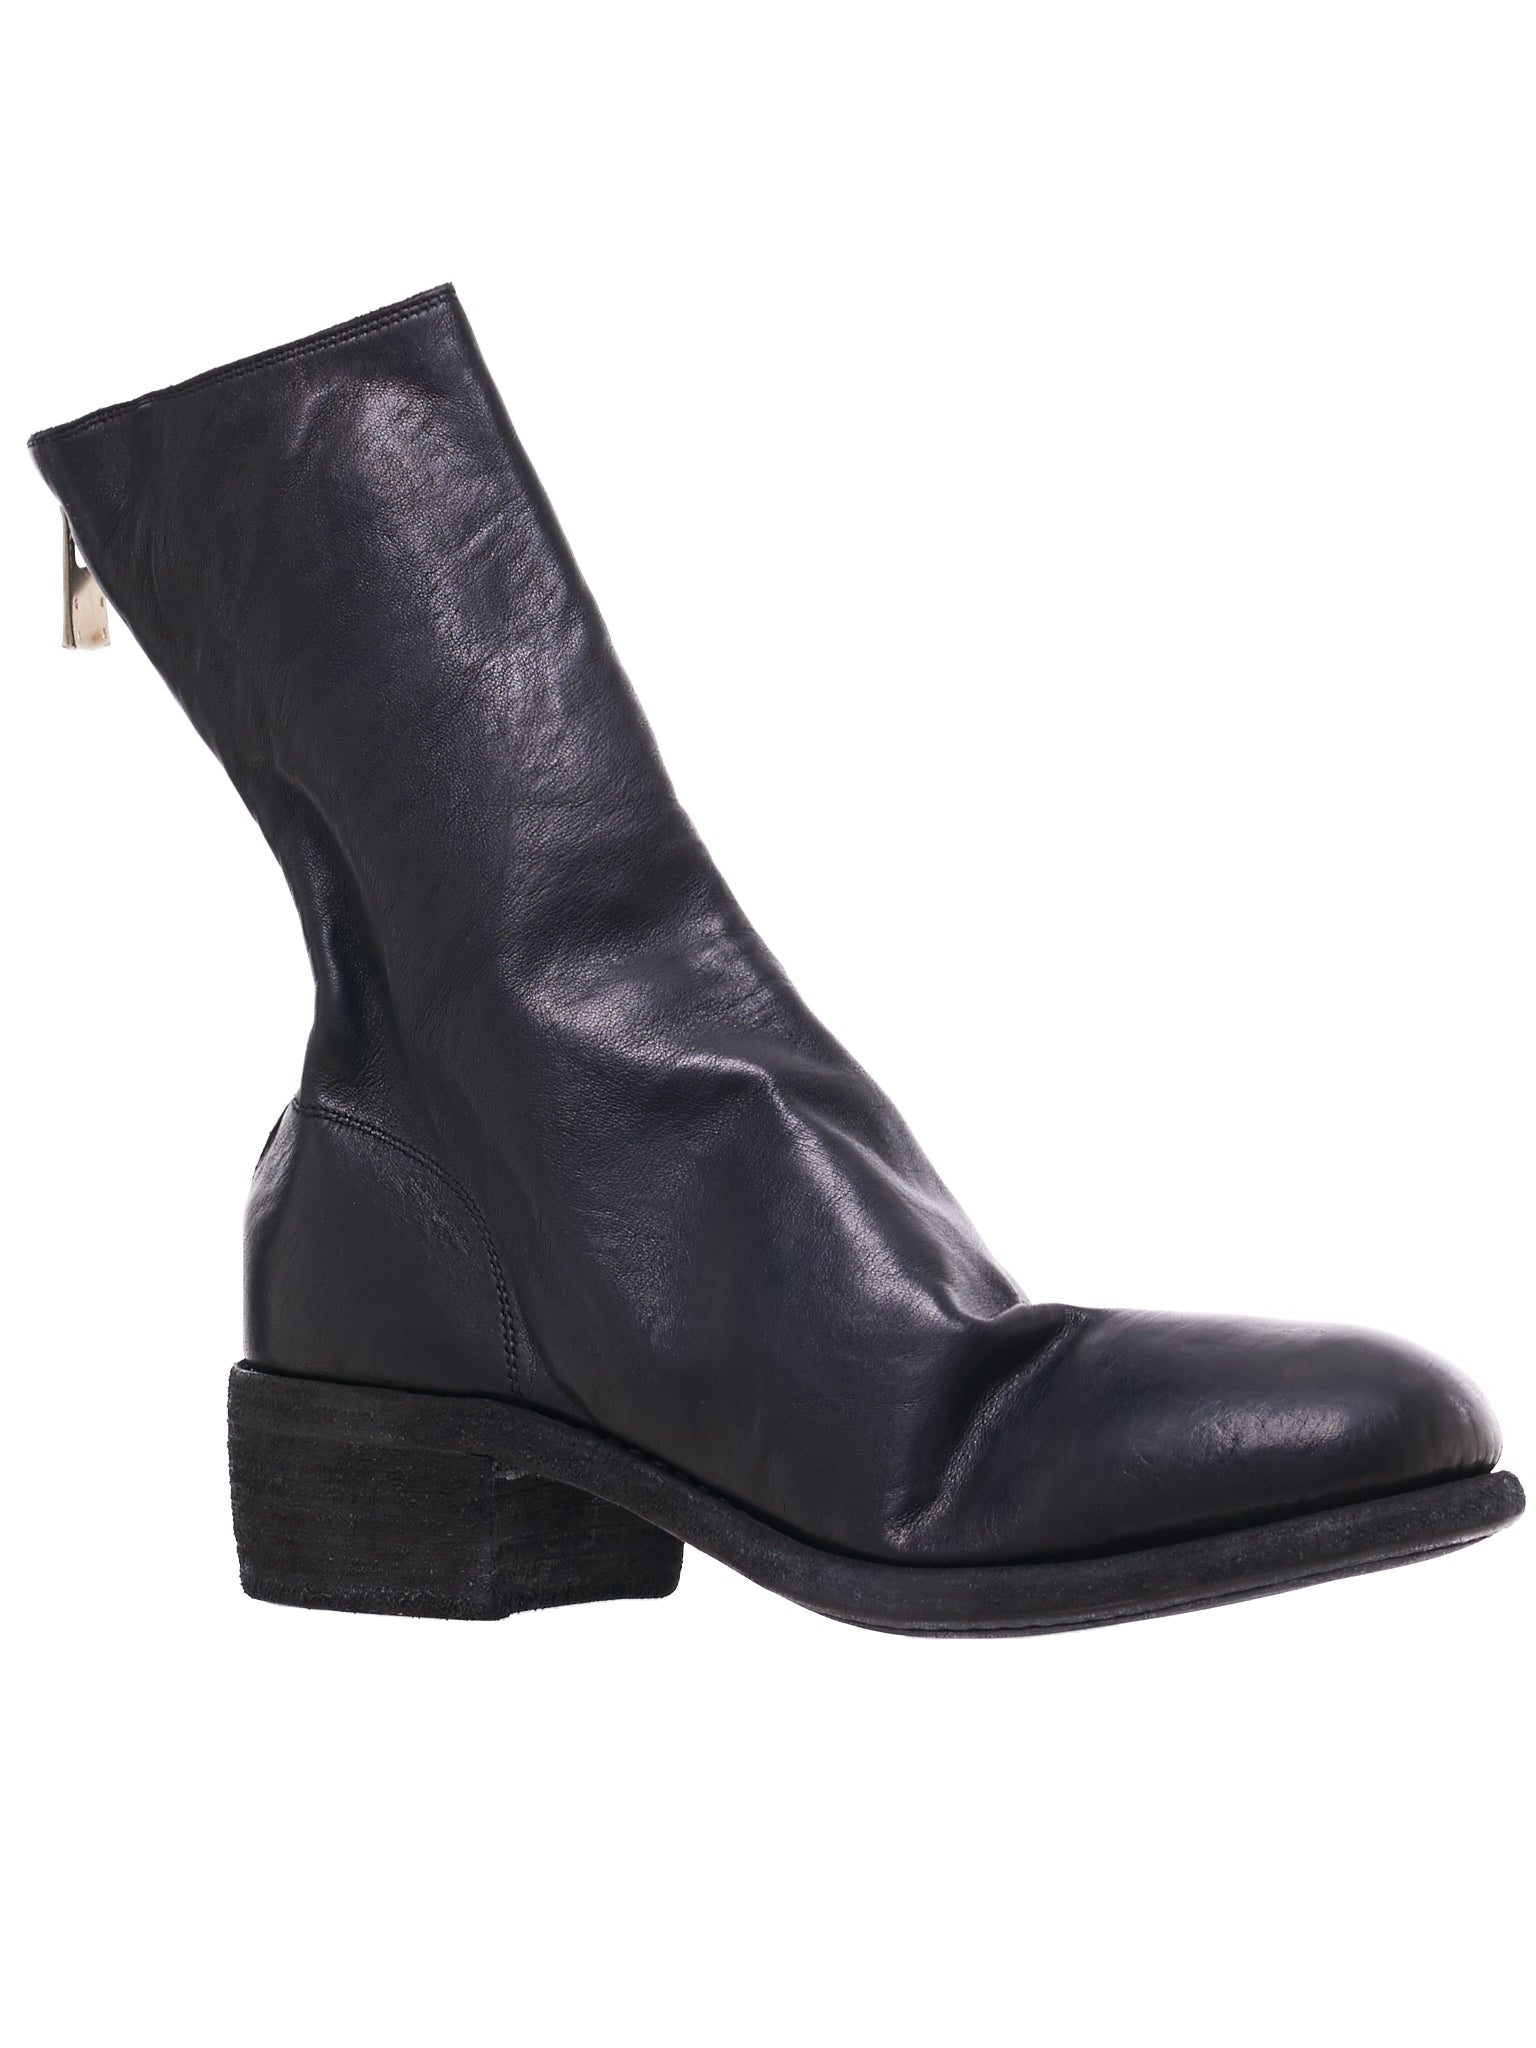 788 Soft Horse Leather Boots (788-SOFT-HORSE-FG-BLACK)